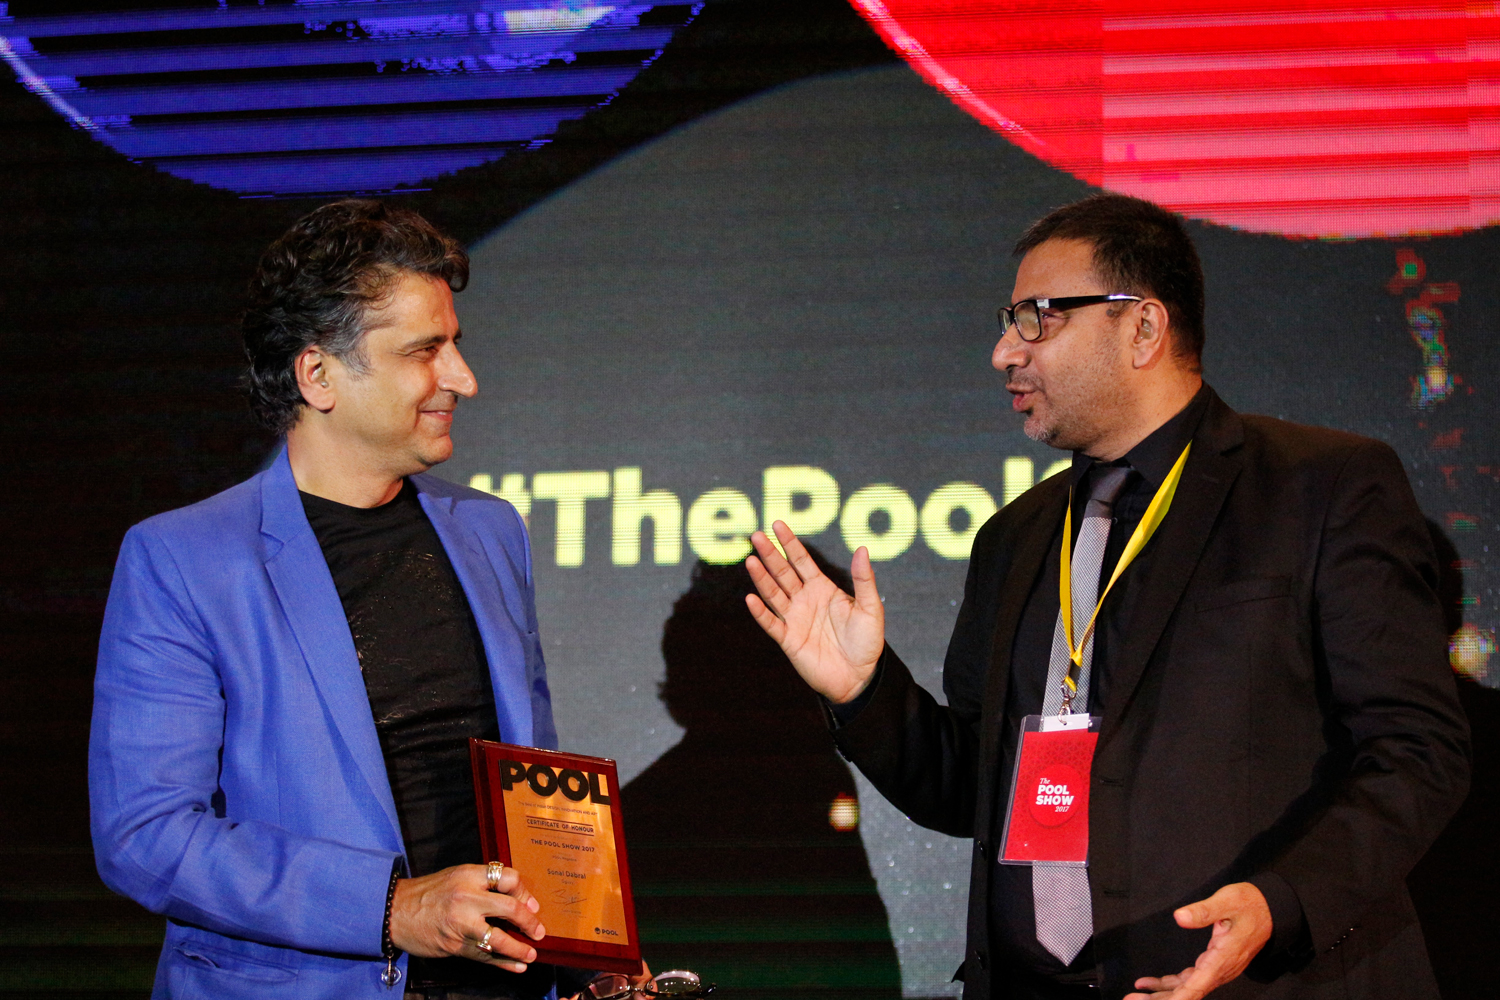 Vikas Satwalekar and Sonal Dabral, receive mementos from Sudhir Sharma, Founder and Editor-in-chief of POOL Magazine.